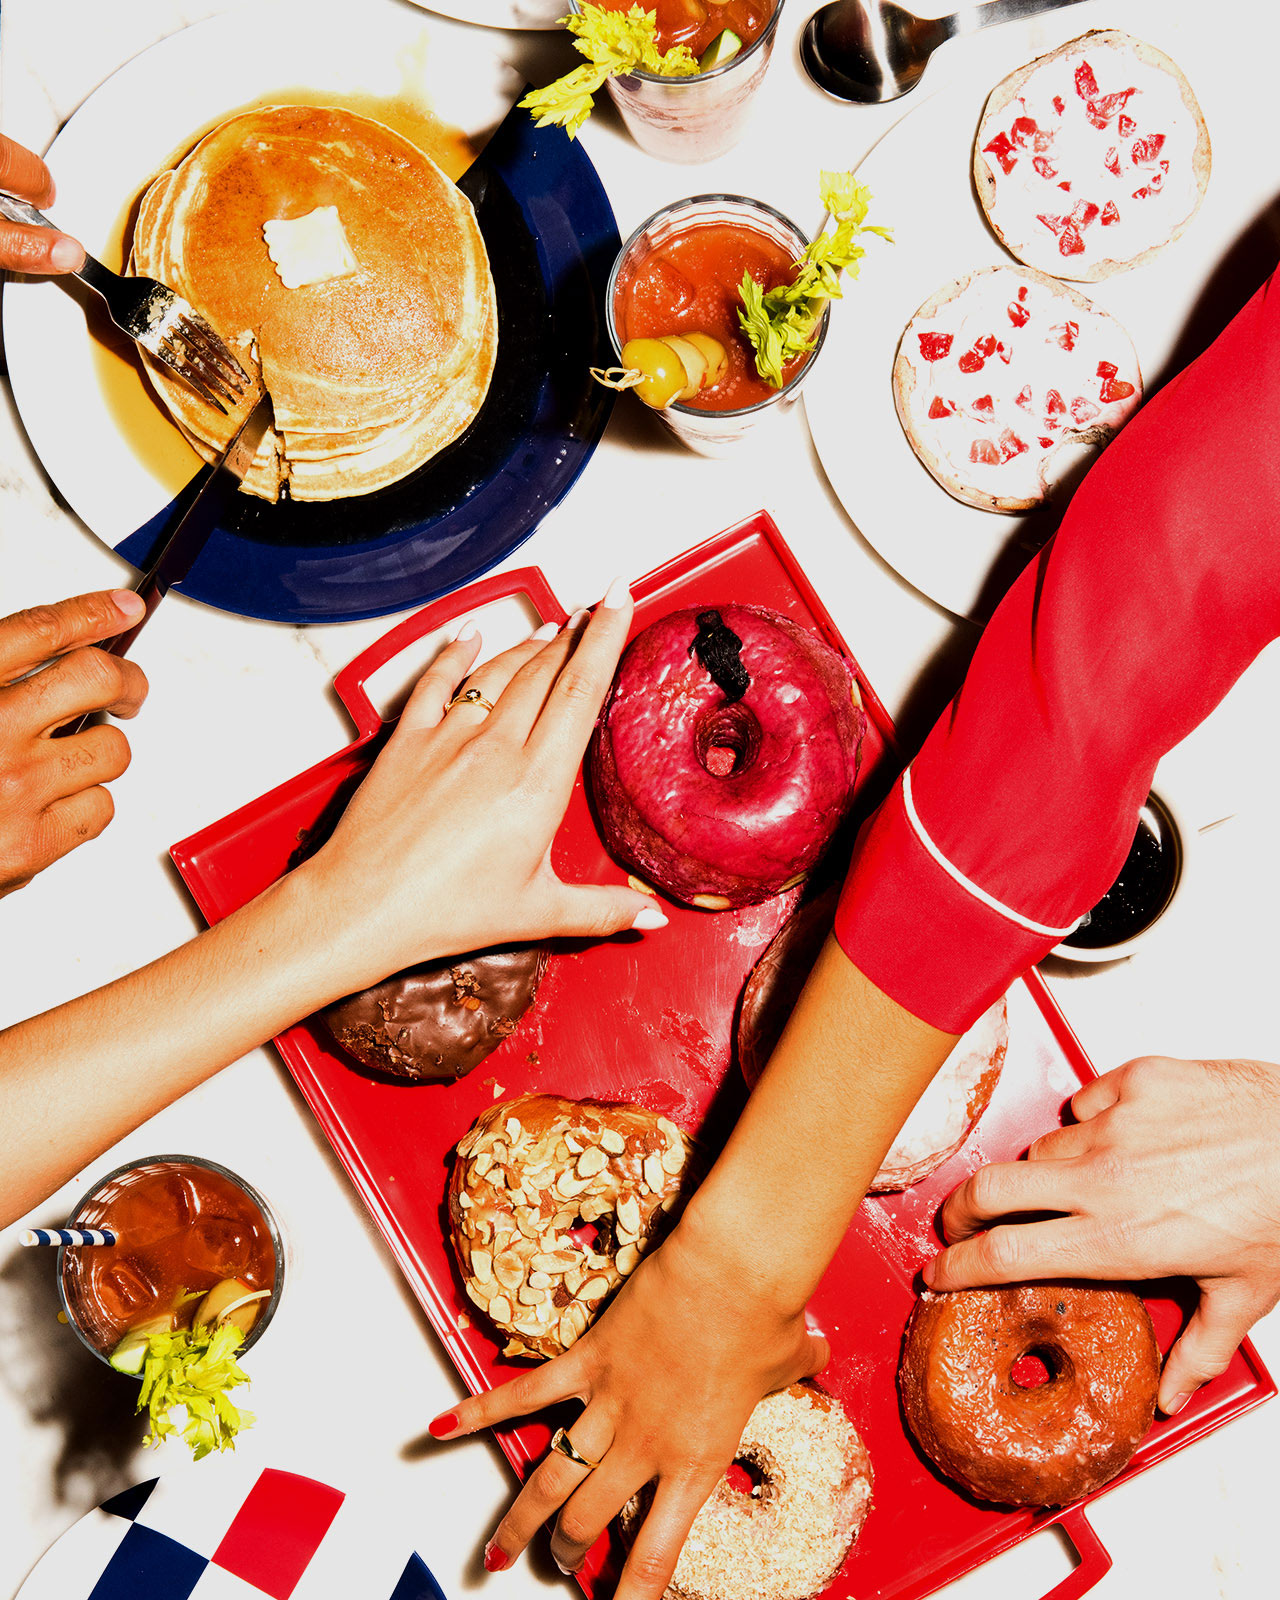 An overshot image of hands reaching for tasty bites like donuts, pancakes and bloody marys.